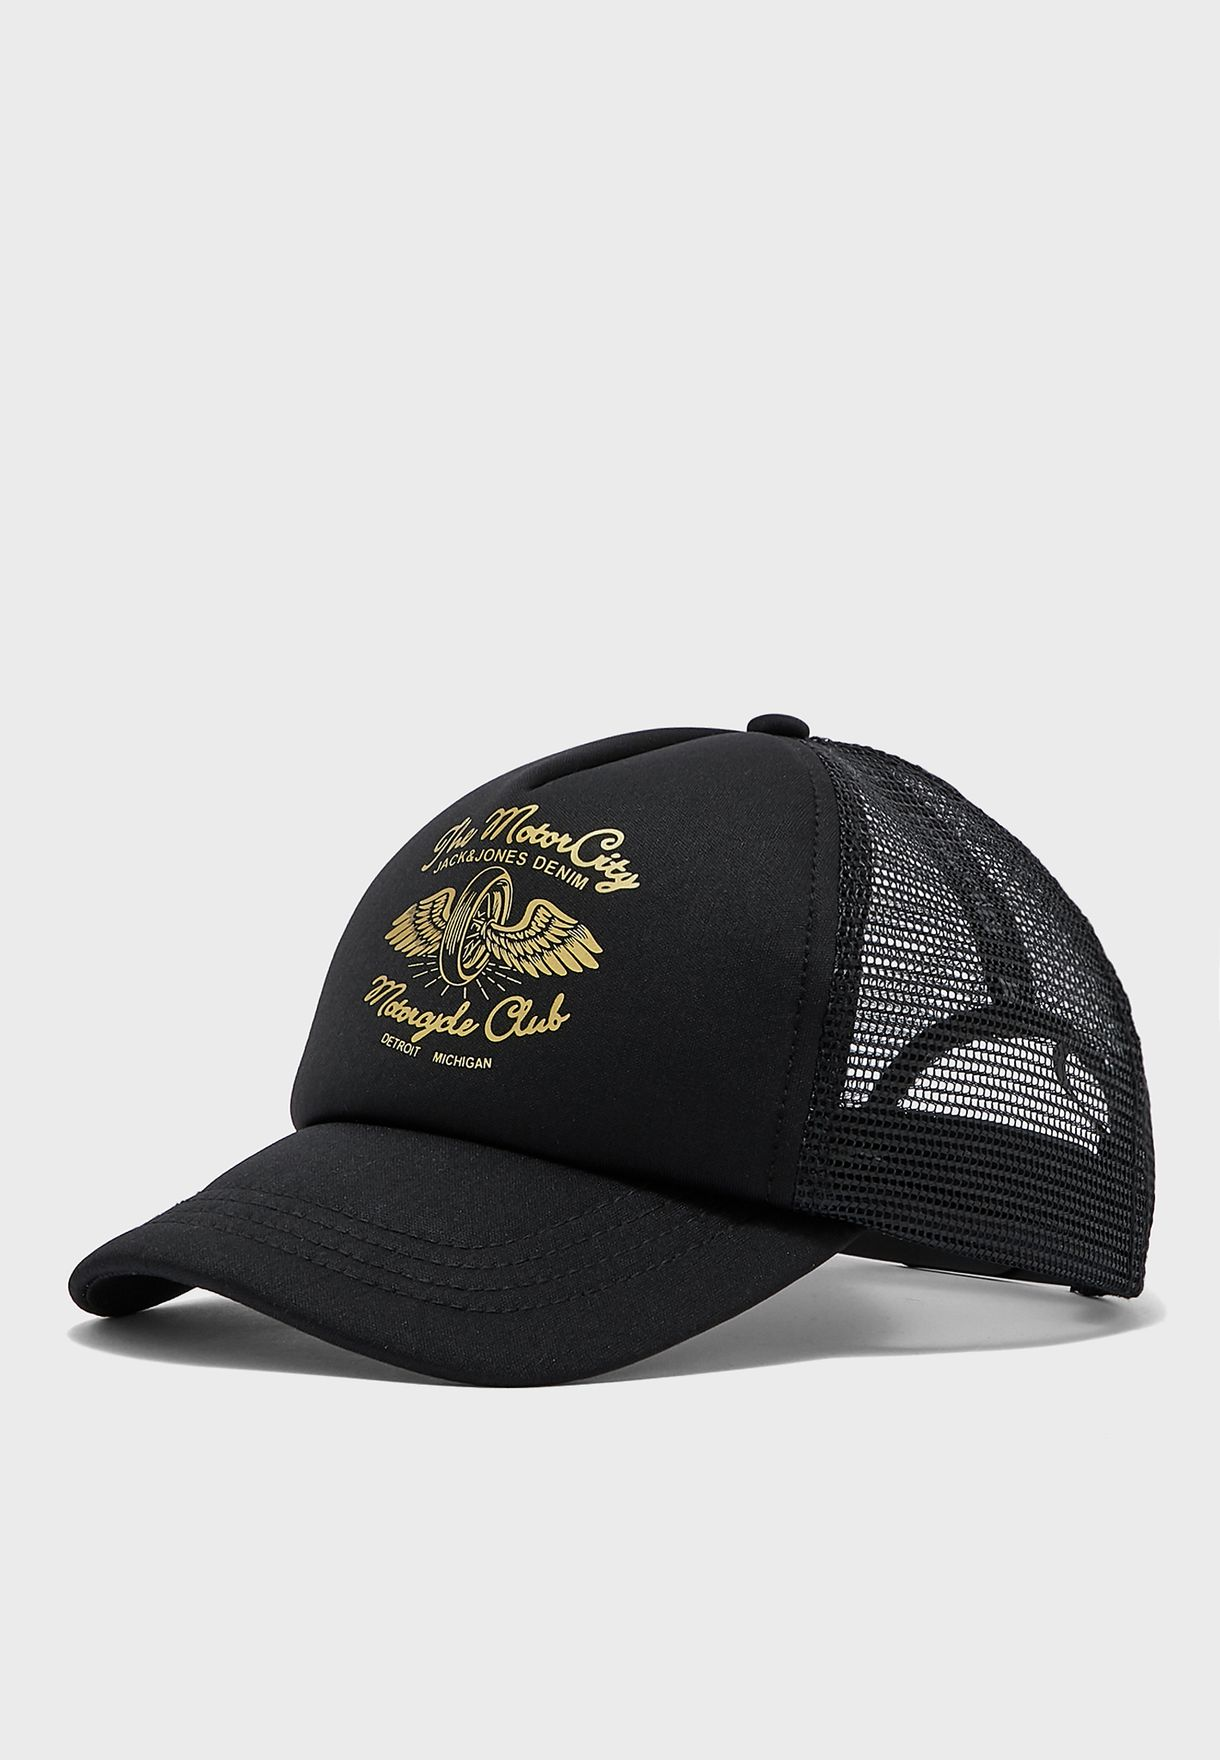 affordable price closer at factory outlets Ace Trucker Cap